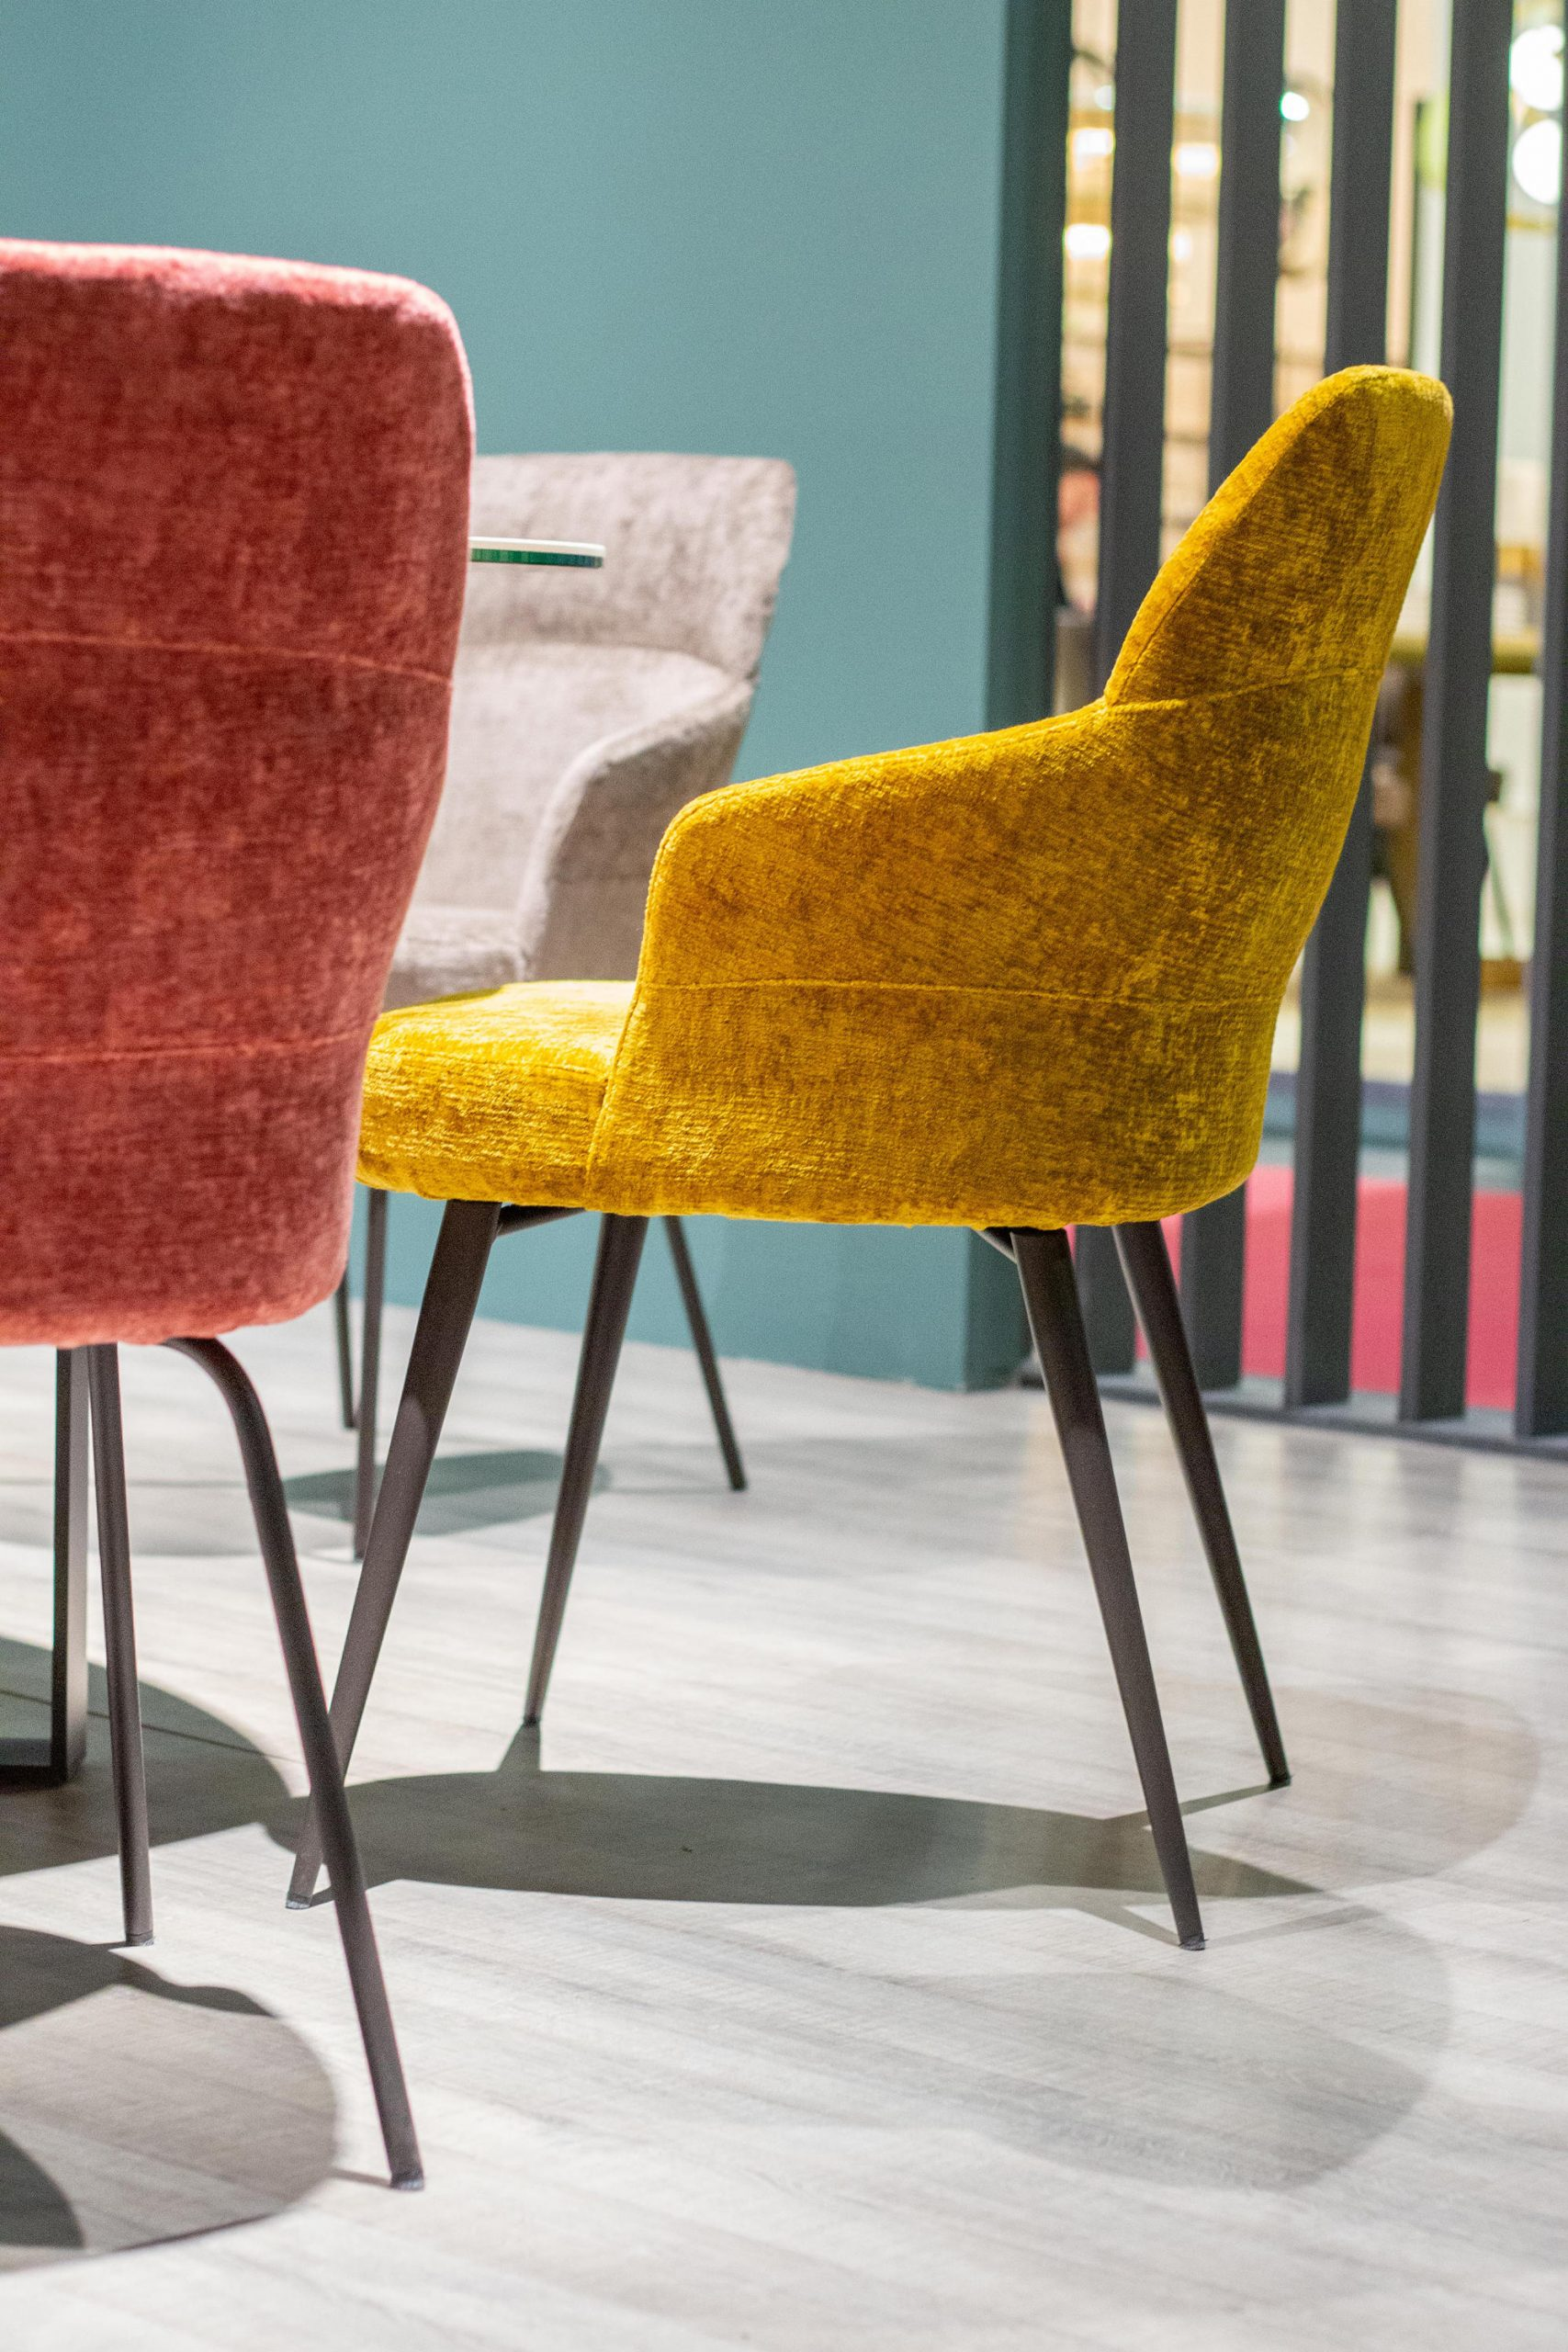 Nubo Chair by Santiago Sevillano for Dressy